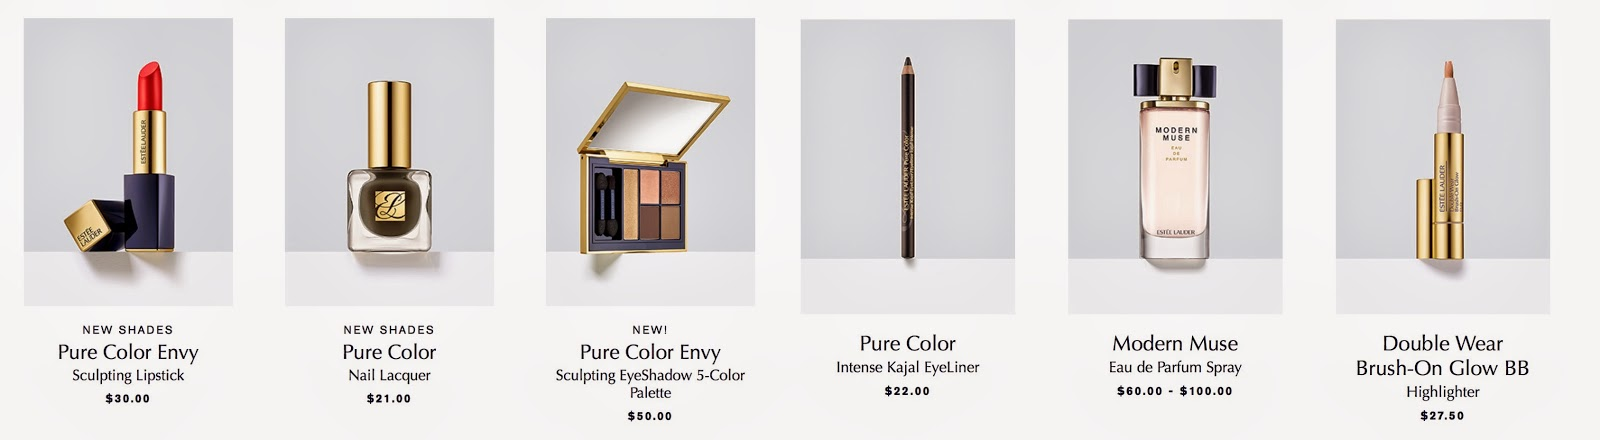 Kendall Jenner's favorit Estee Lauder Products